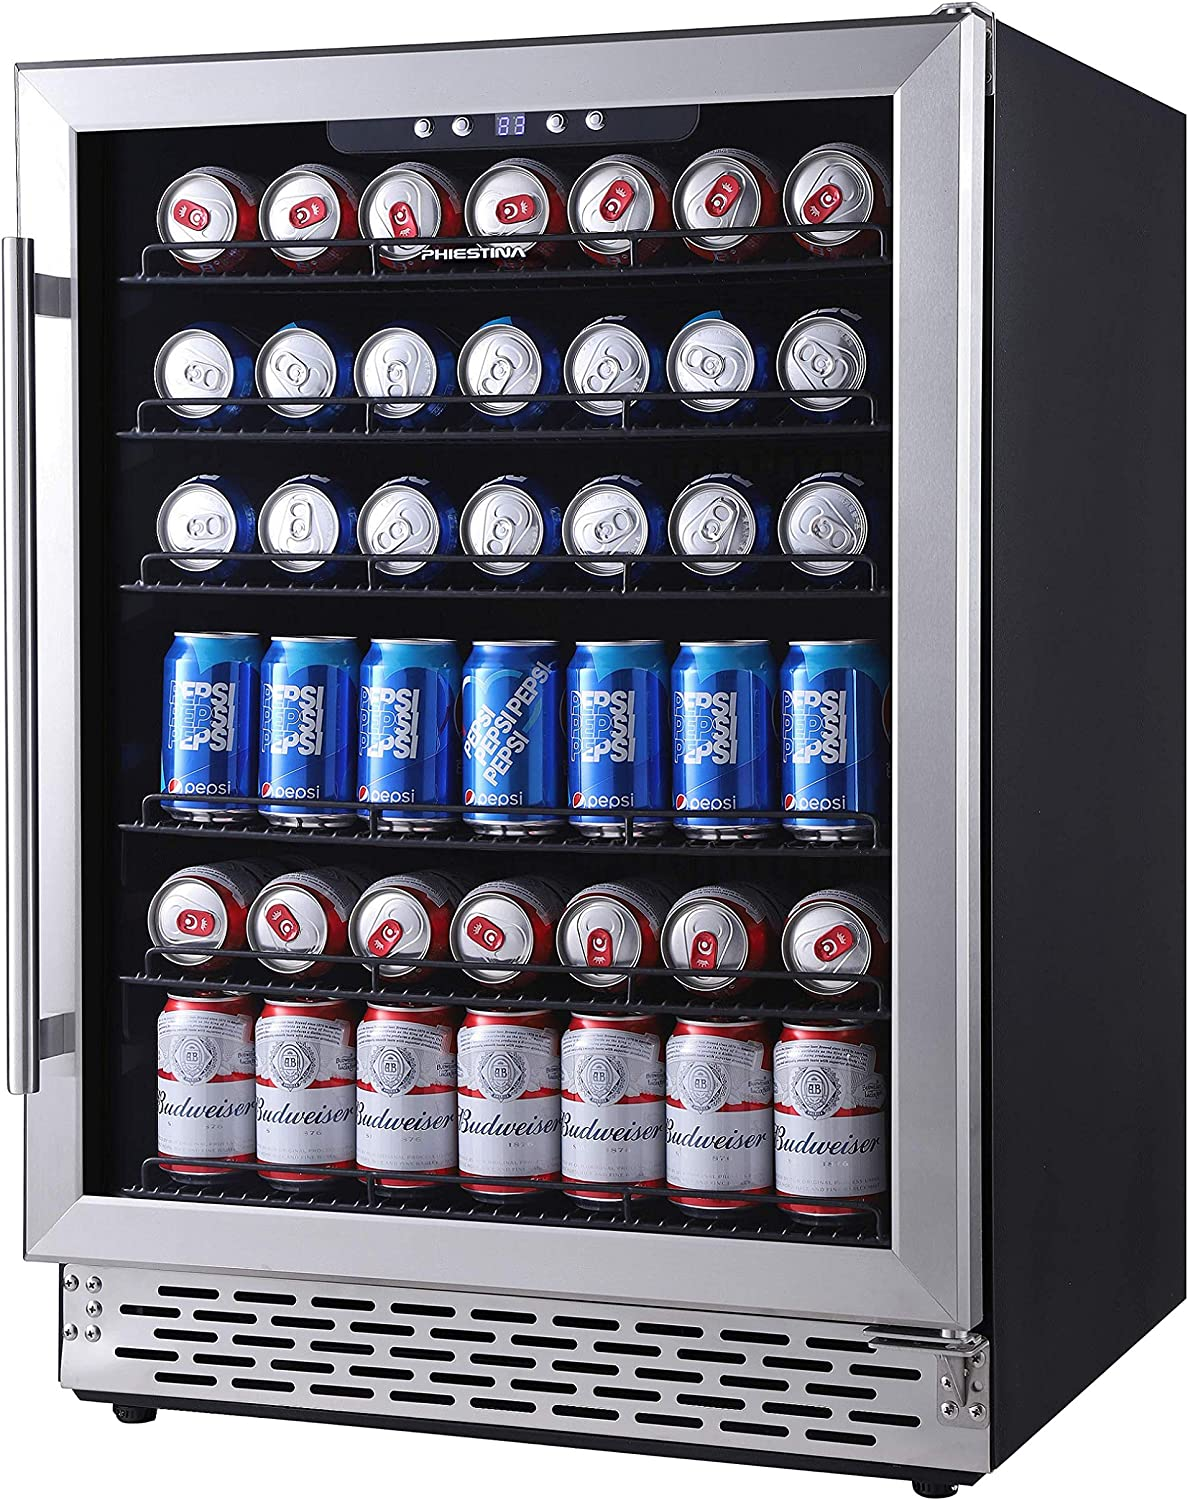 Phiestina 24 Inch Beverage Cooler Refrigerator – 175 Can Built-in or Free Standing Beverage Fridge with Glass Door for Soda Beer or Wine – Drink Fridge For Home Bar or Office